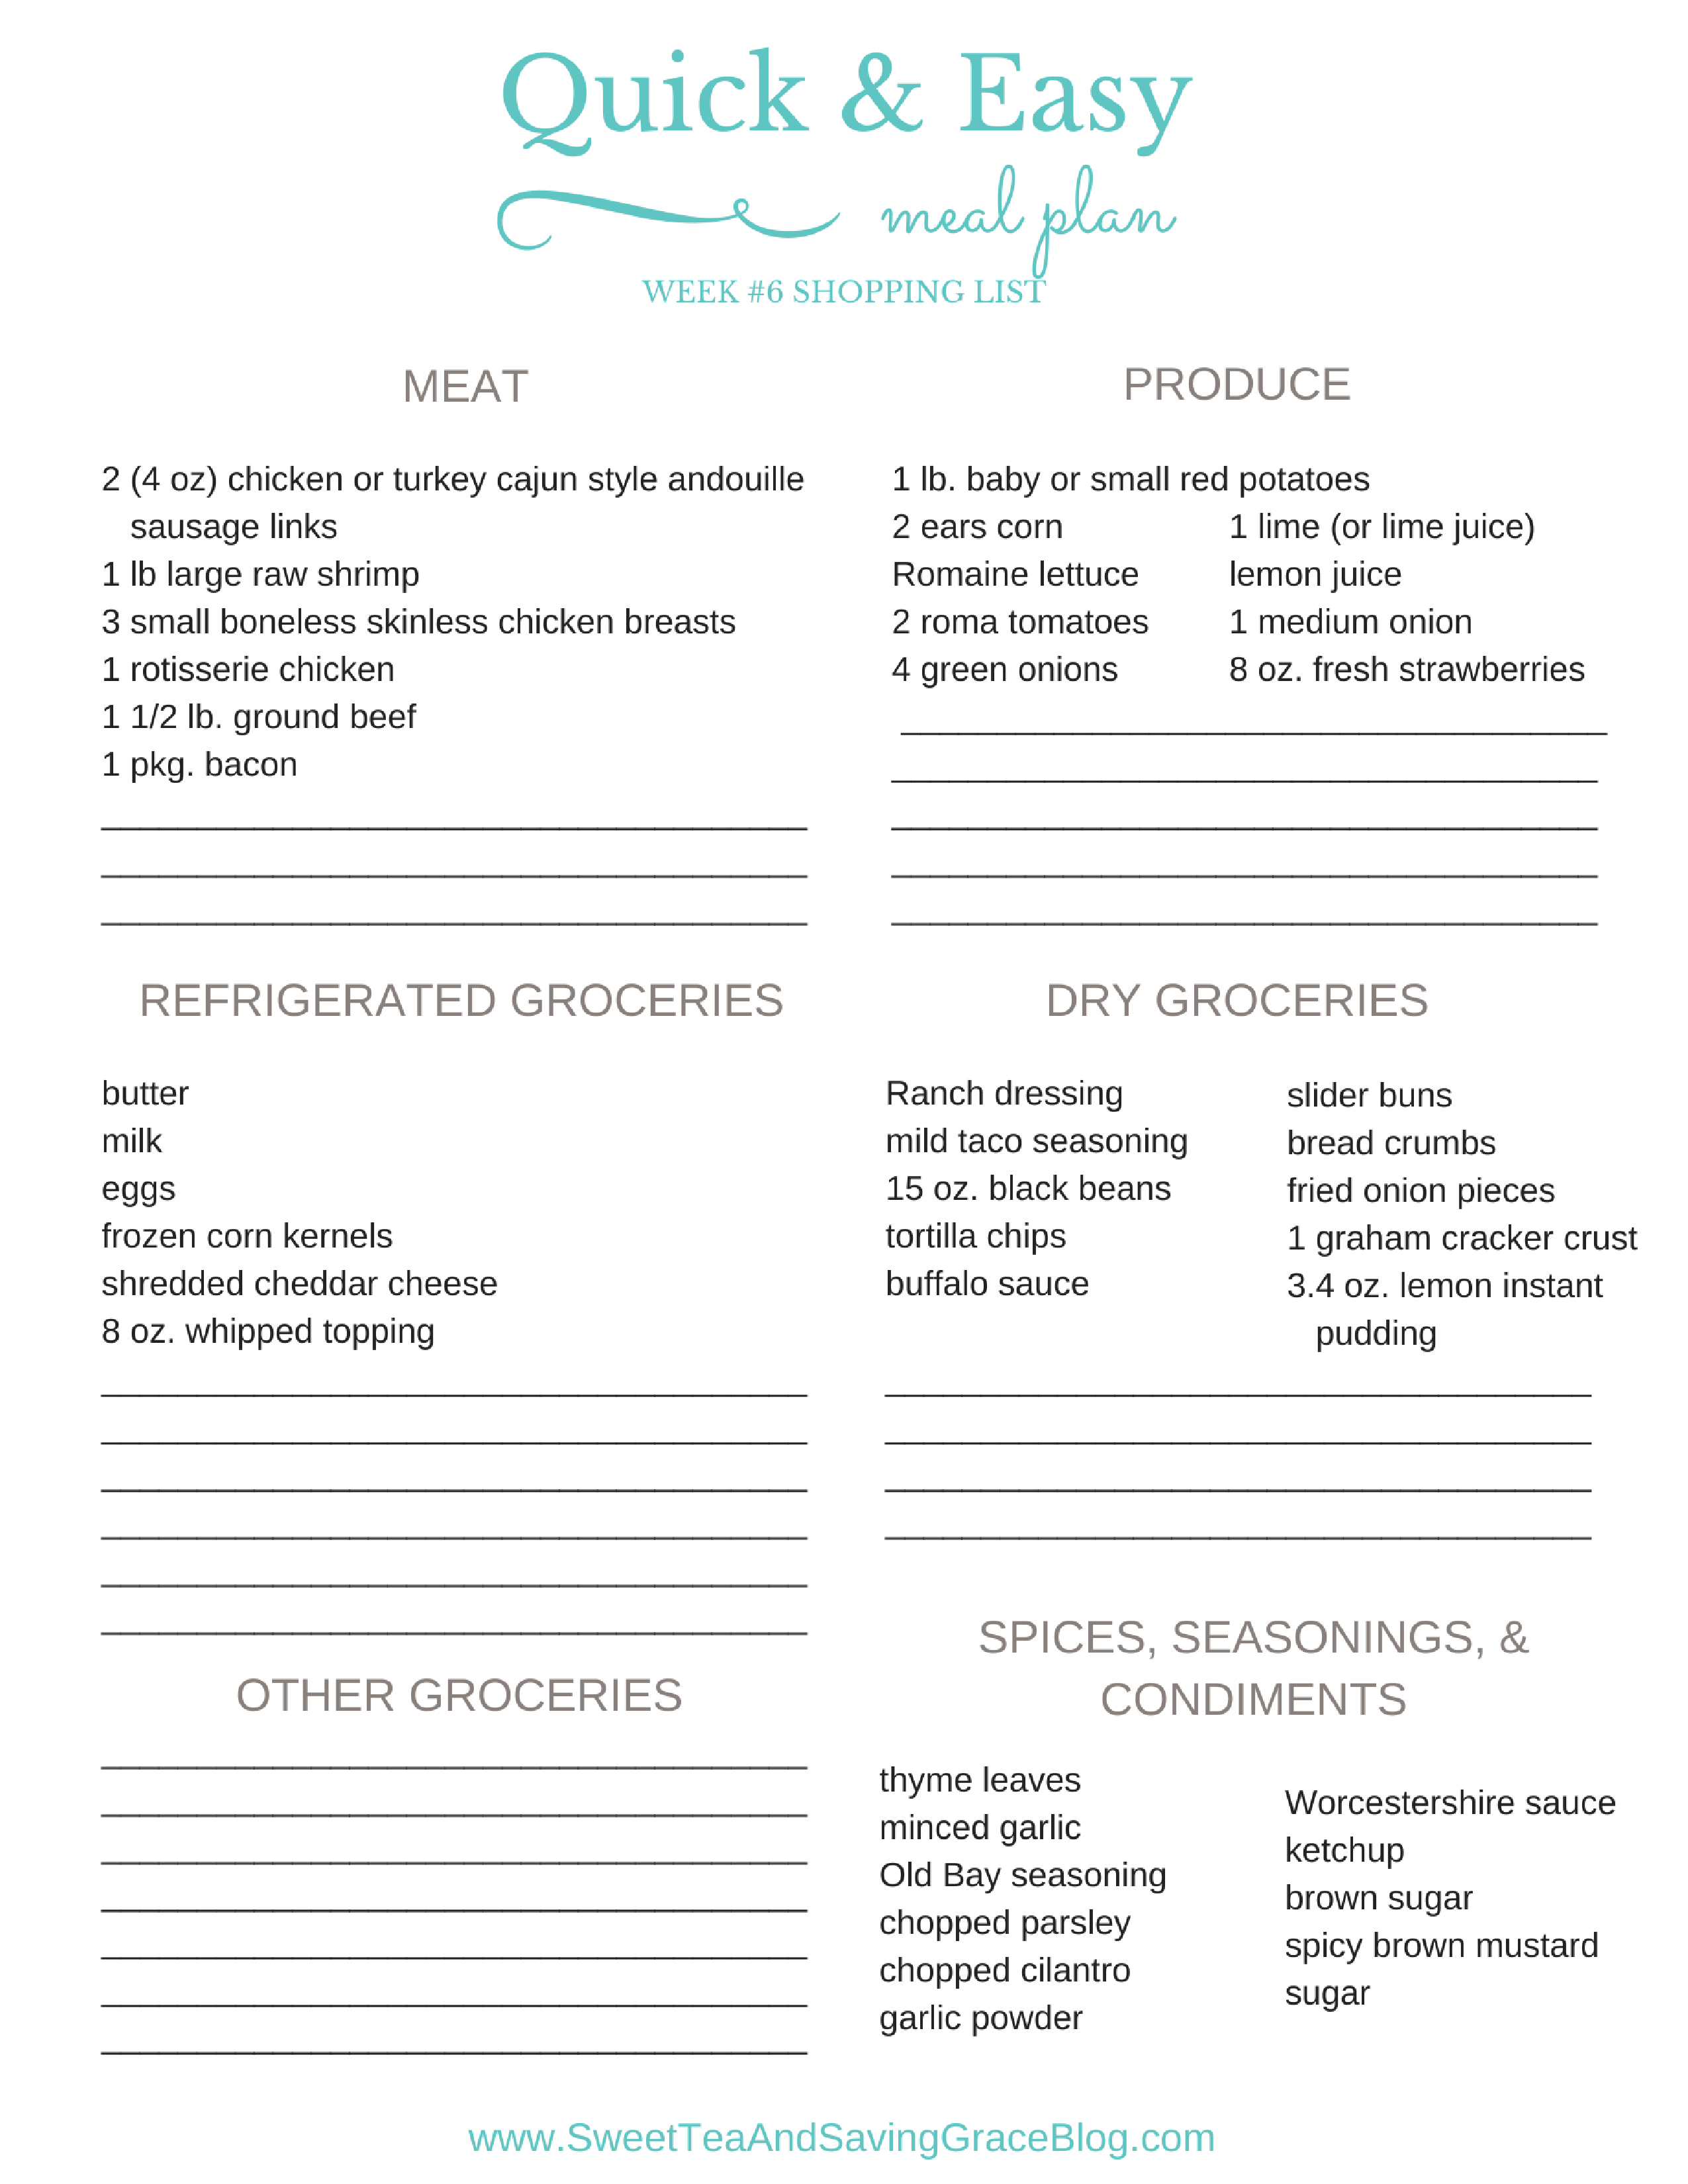 Download this free printable shopping list and consider this week's meal plan done!